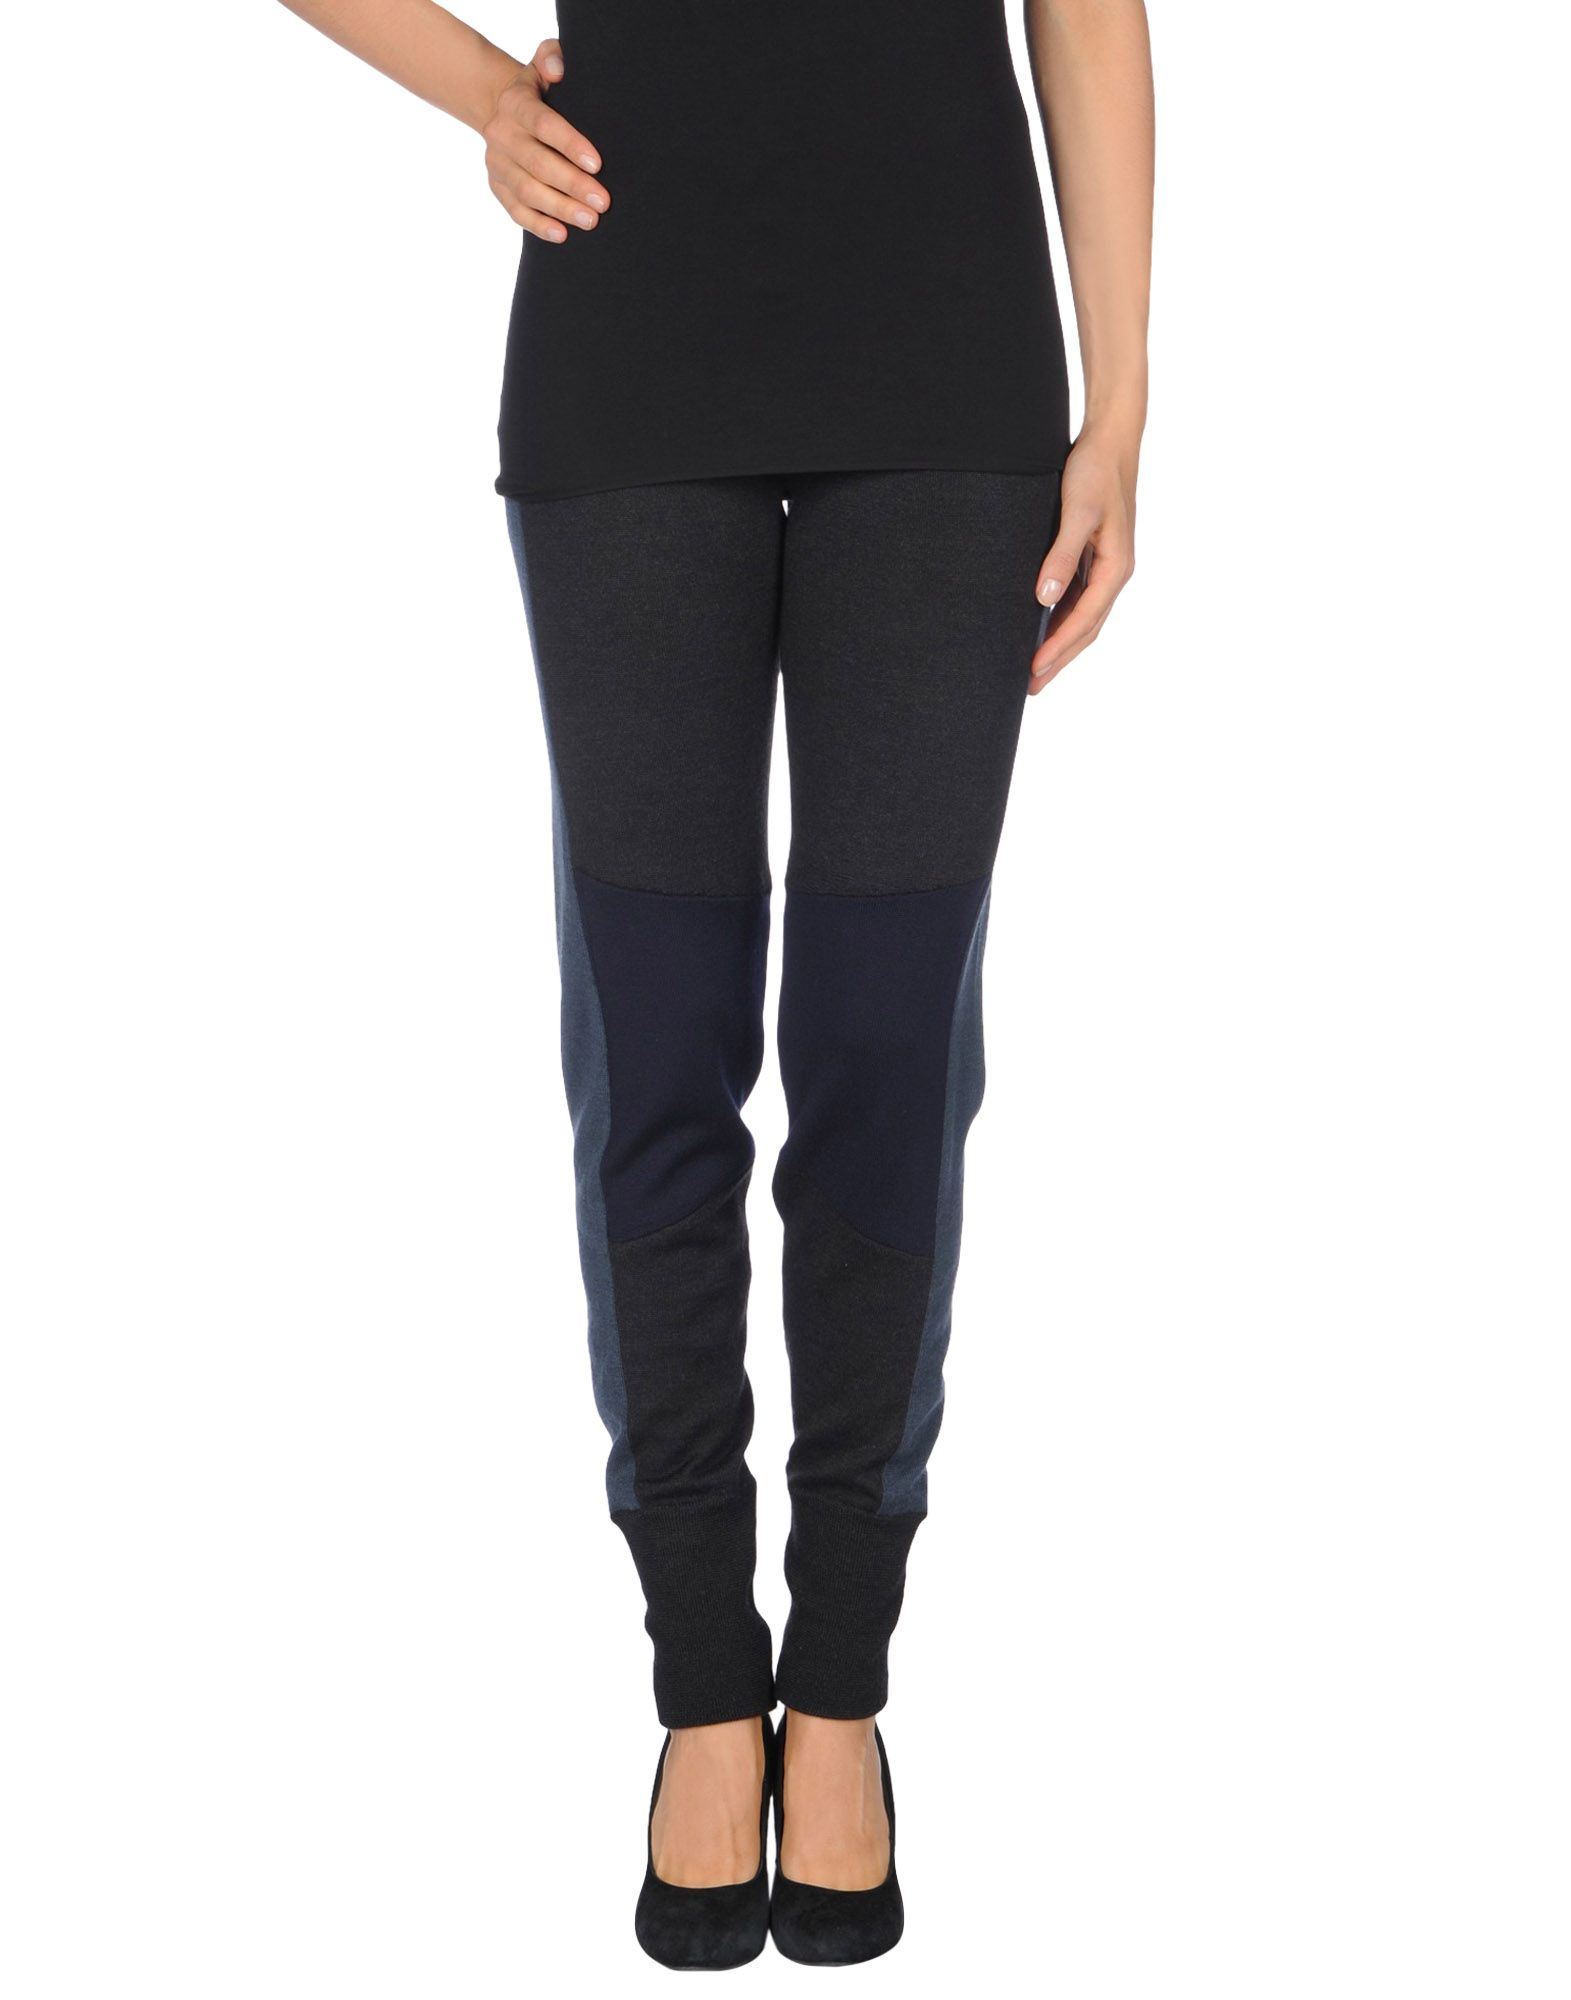 Mm6 by maison martin margiela leggings in black lyst for A la maison lotion